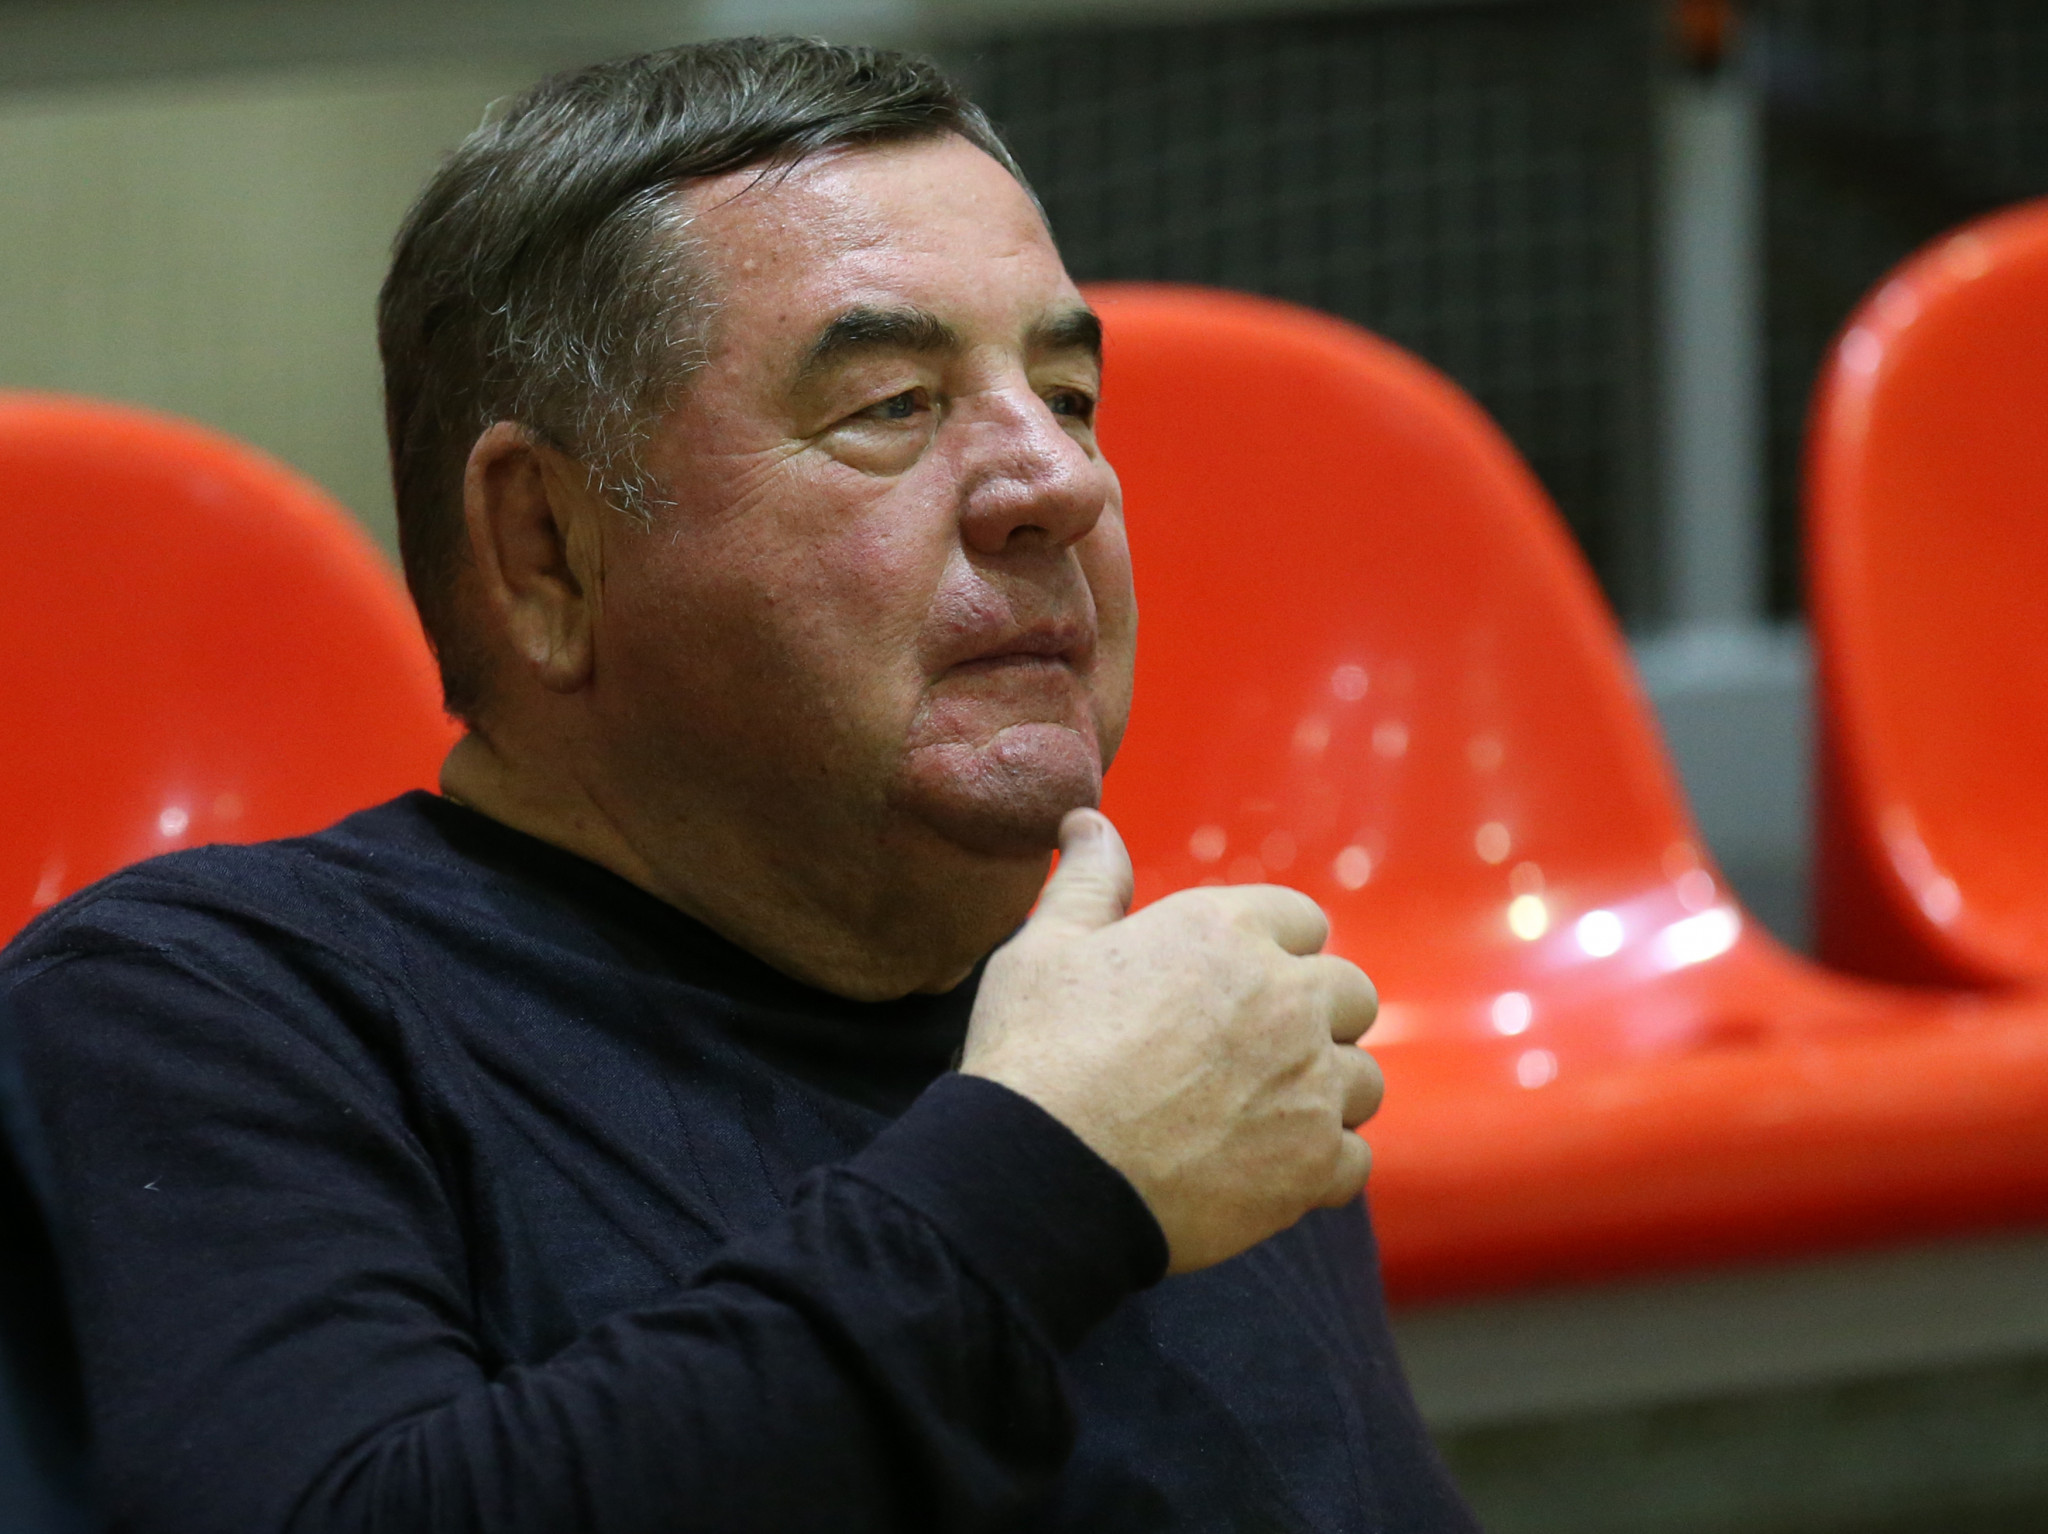 International Sambo Federation President Vasily Shestakov offered his congratulations to the sambo community on the federation's 81st anniversary ©FIAS